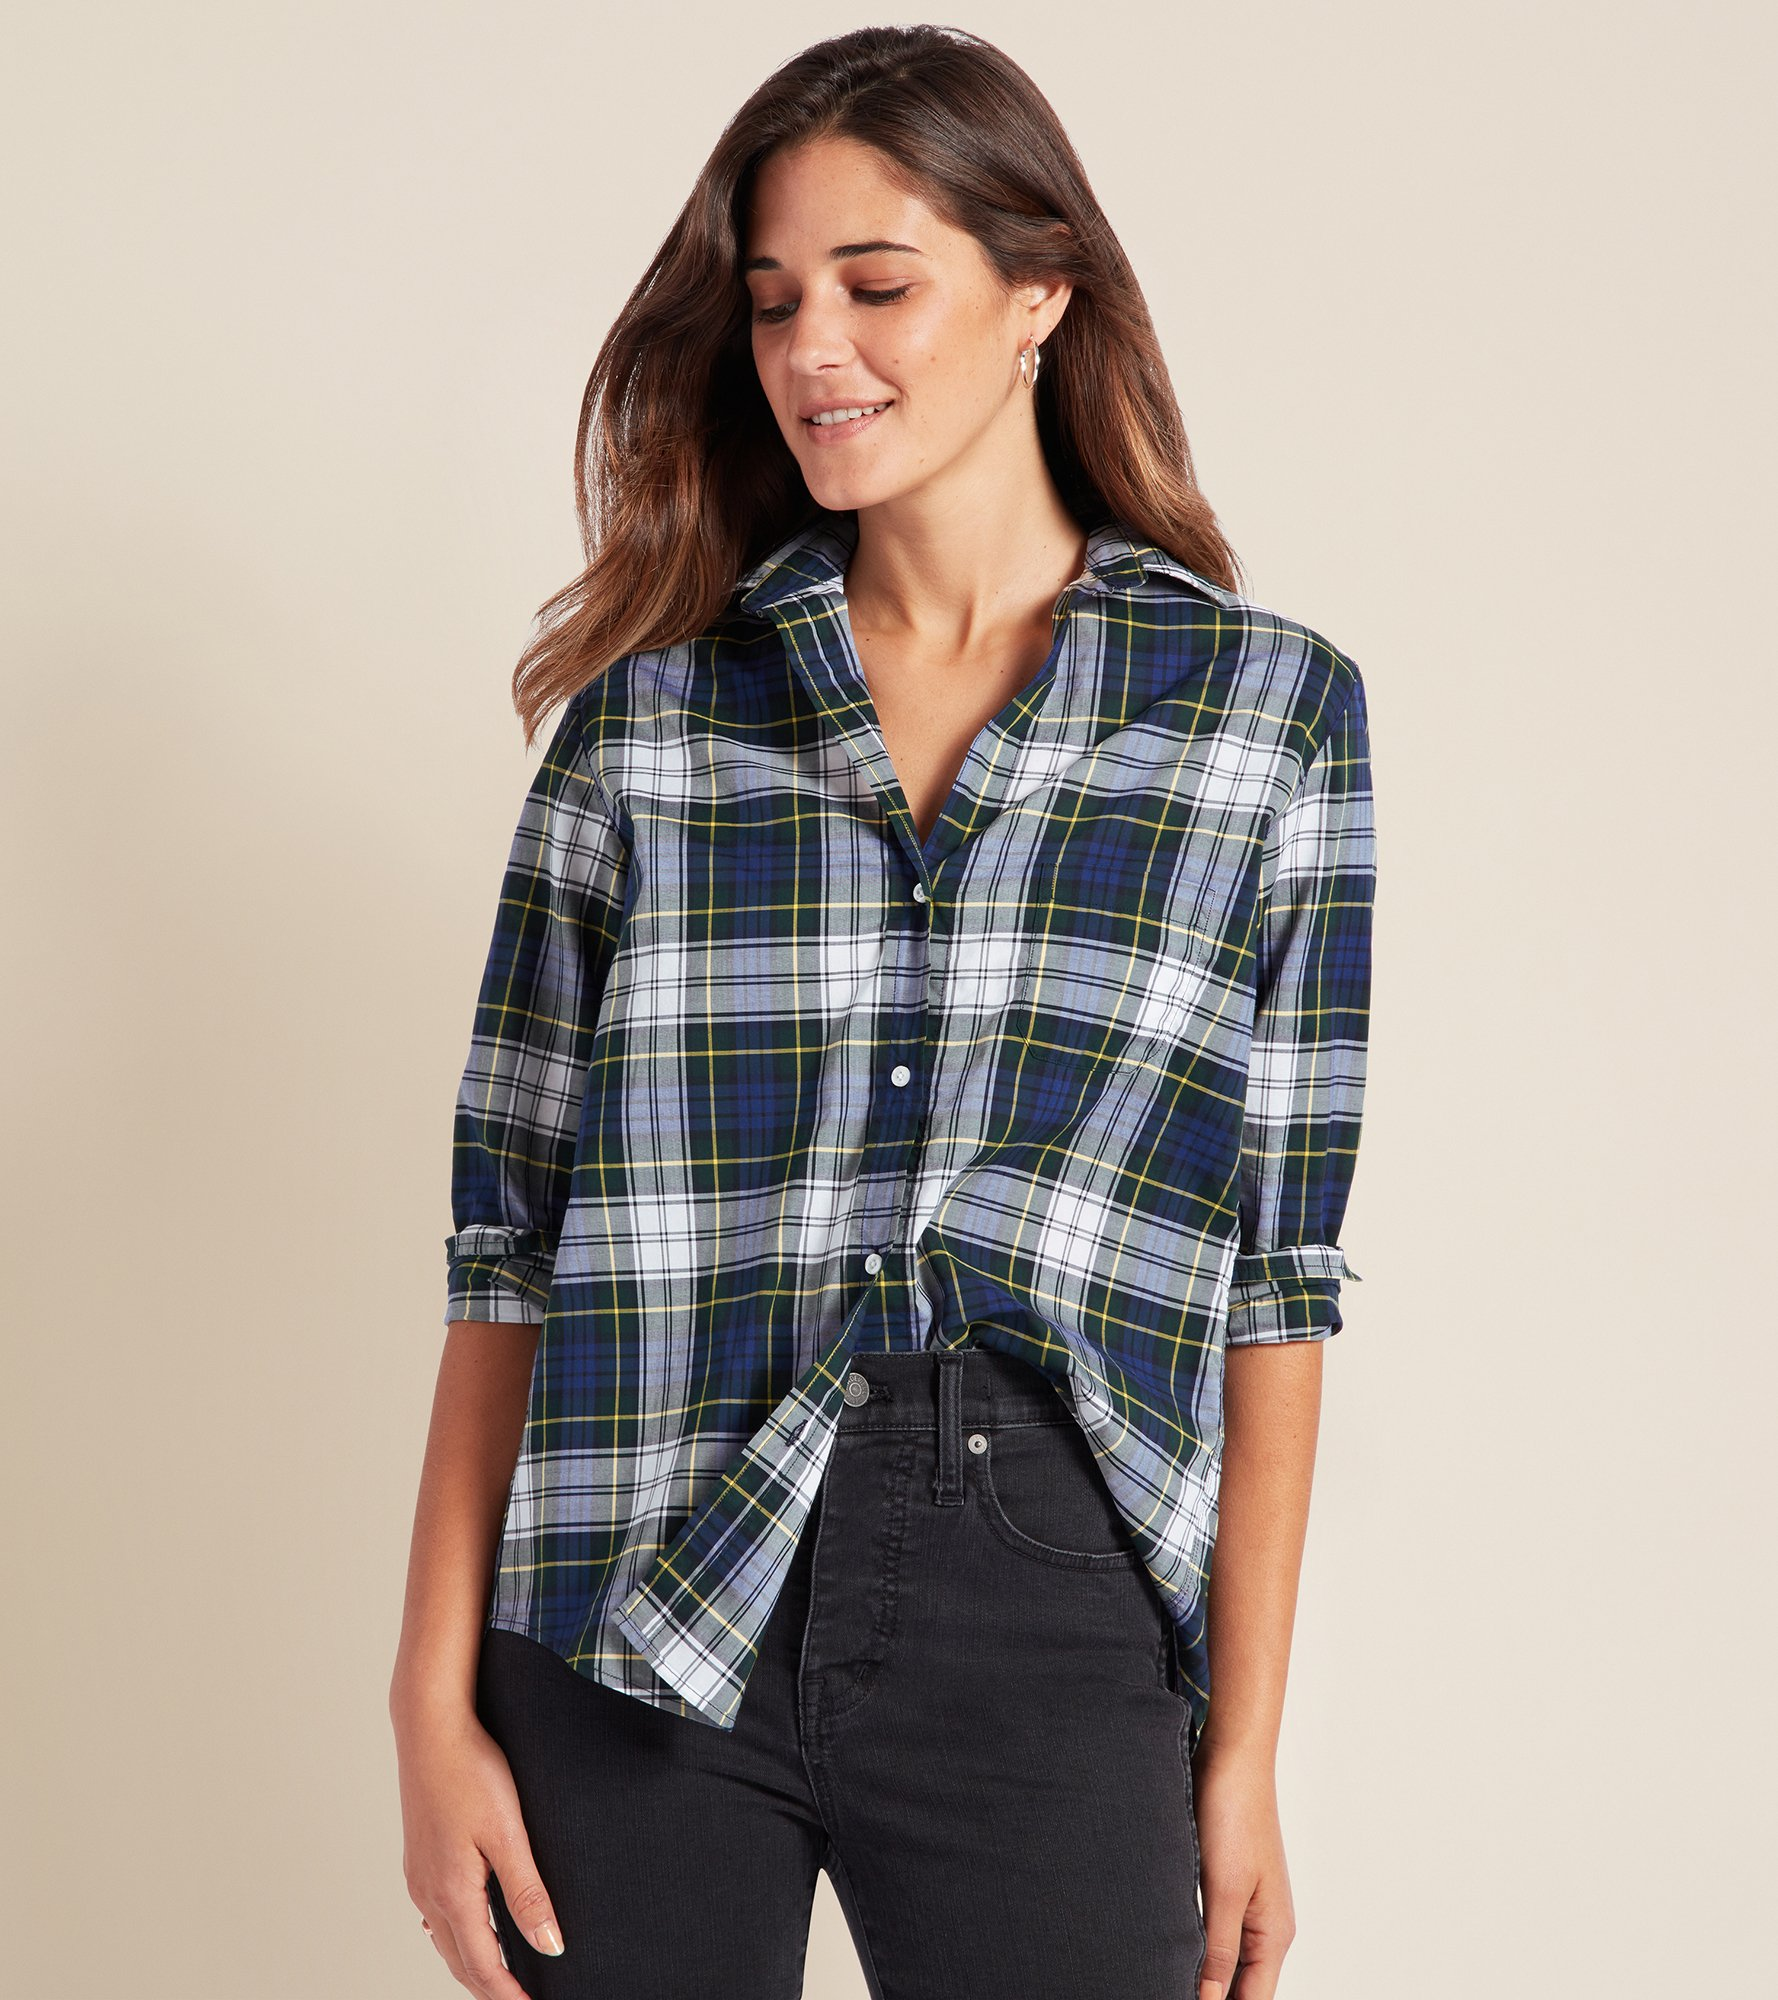 Image of The Hero Cool Cotton Plaids Sale